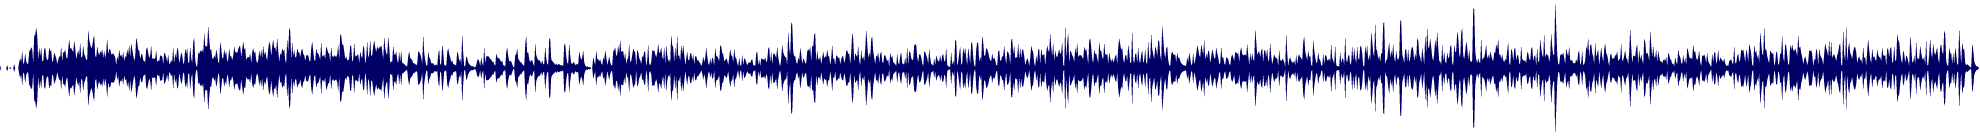 waveform of track #64679